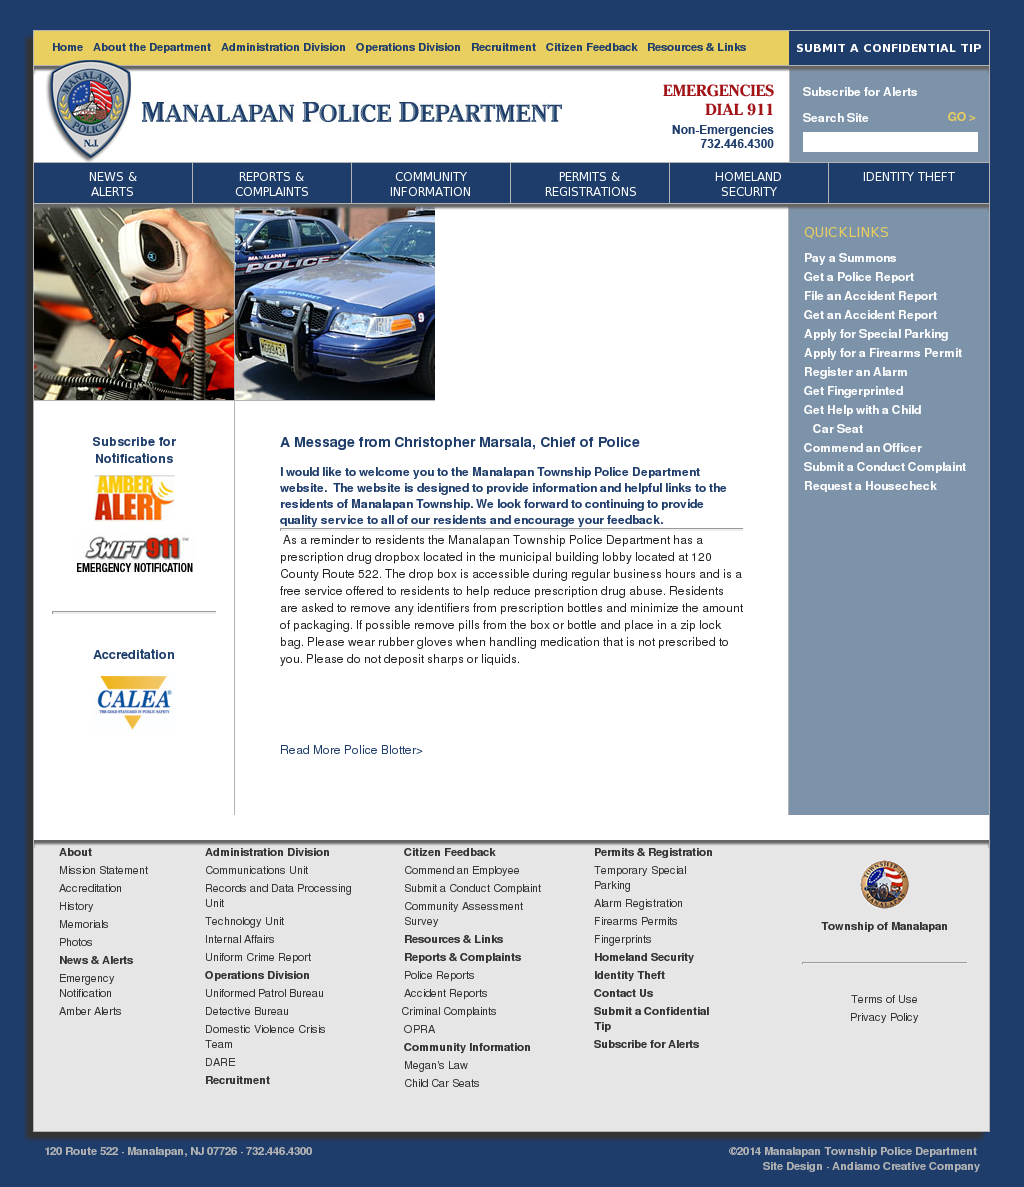 Manalapan Township Police Dept Competitors, Revenue and Employees